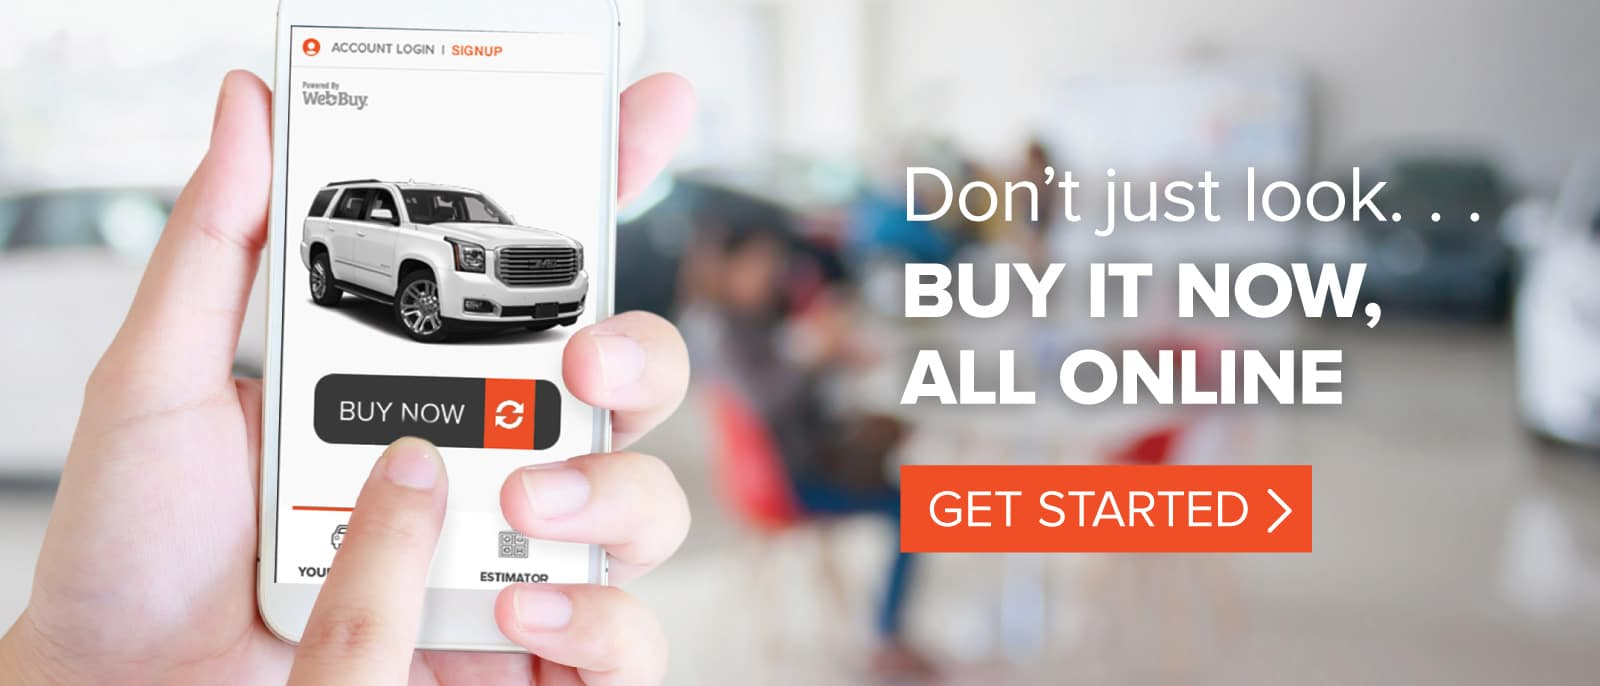 Don't just look, buy it now. Get started